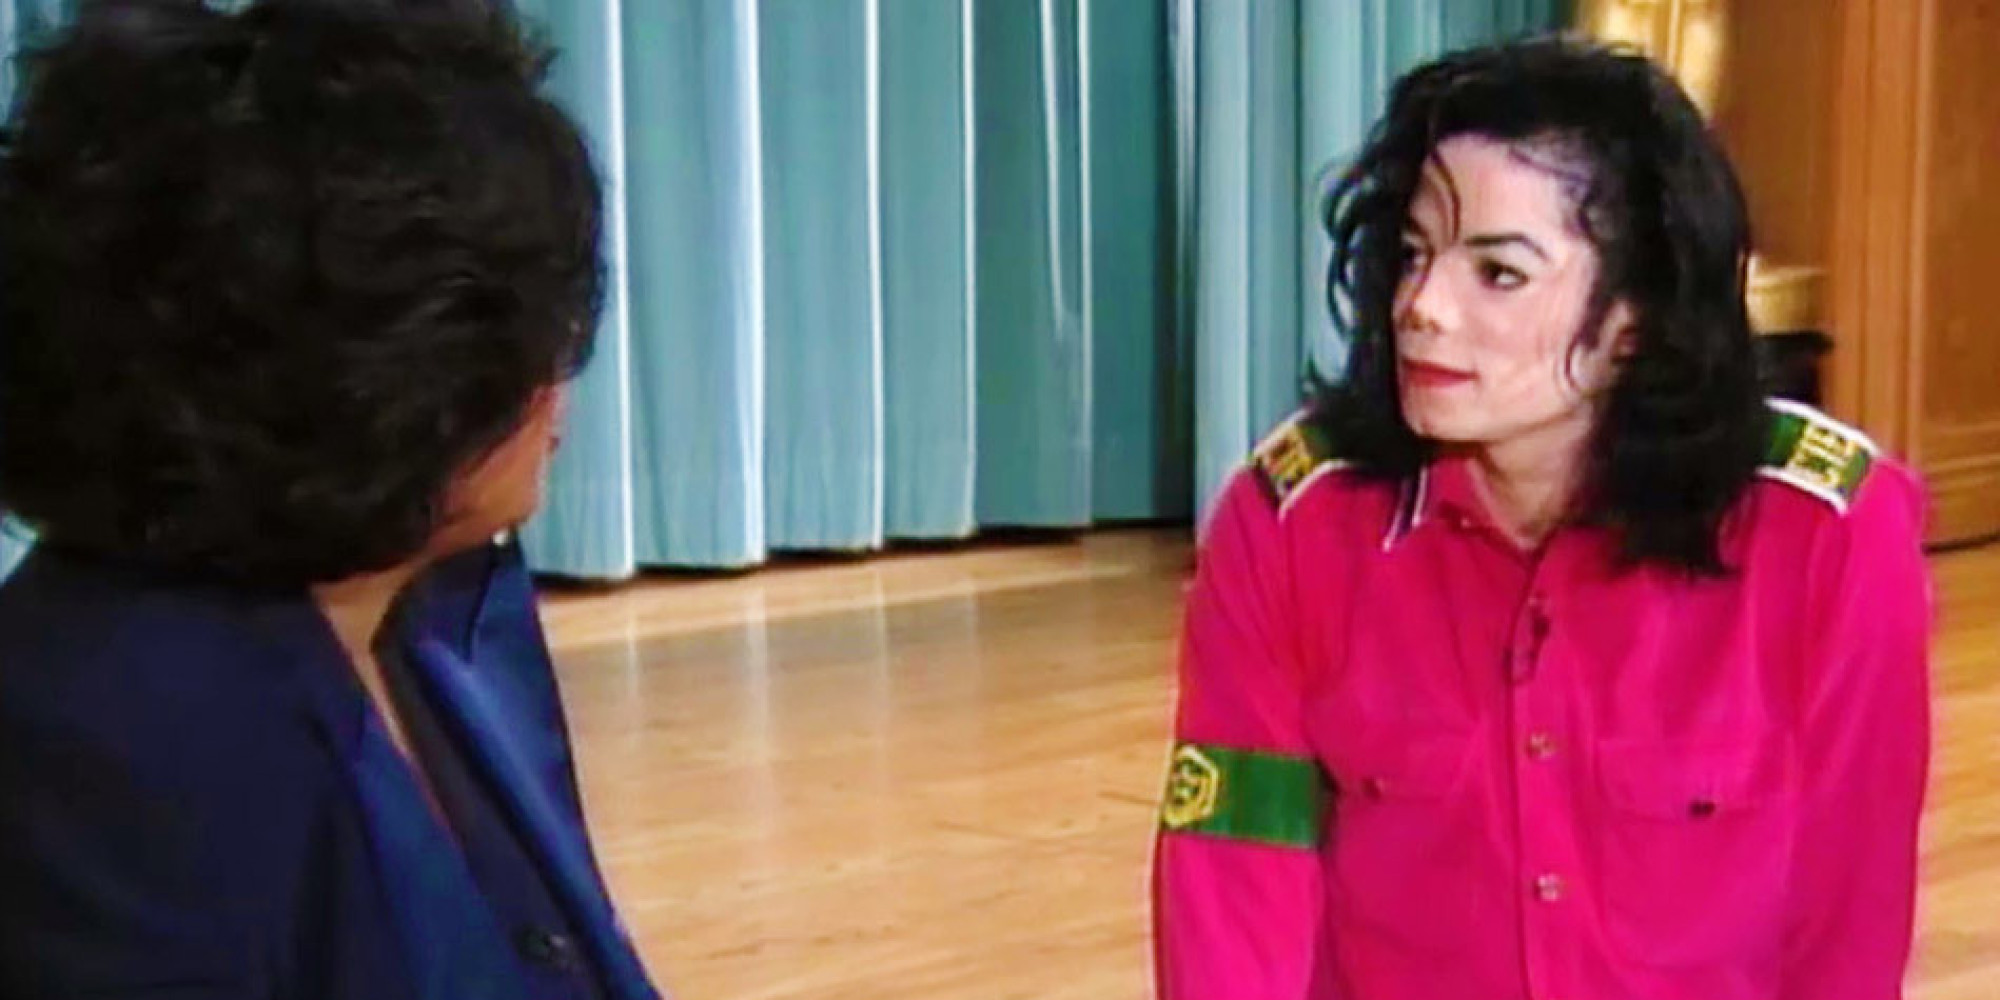 michael jackson interview essay Michael jackson essay - michael jackson: man in the mirror michael jackson is arguably the most well know celebrity figure in the world today michael joseph jackson was born in august 1958, in gary, indiana jackson has spent almost his entire life as a public performer he was a member of the jackson five at the age of four, soon becoming the.